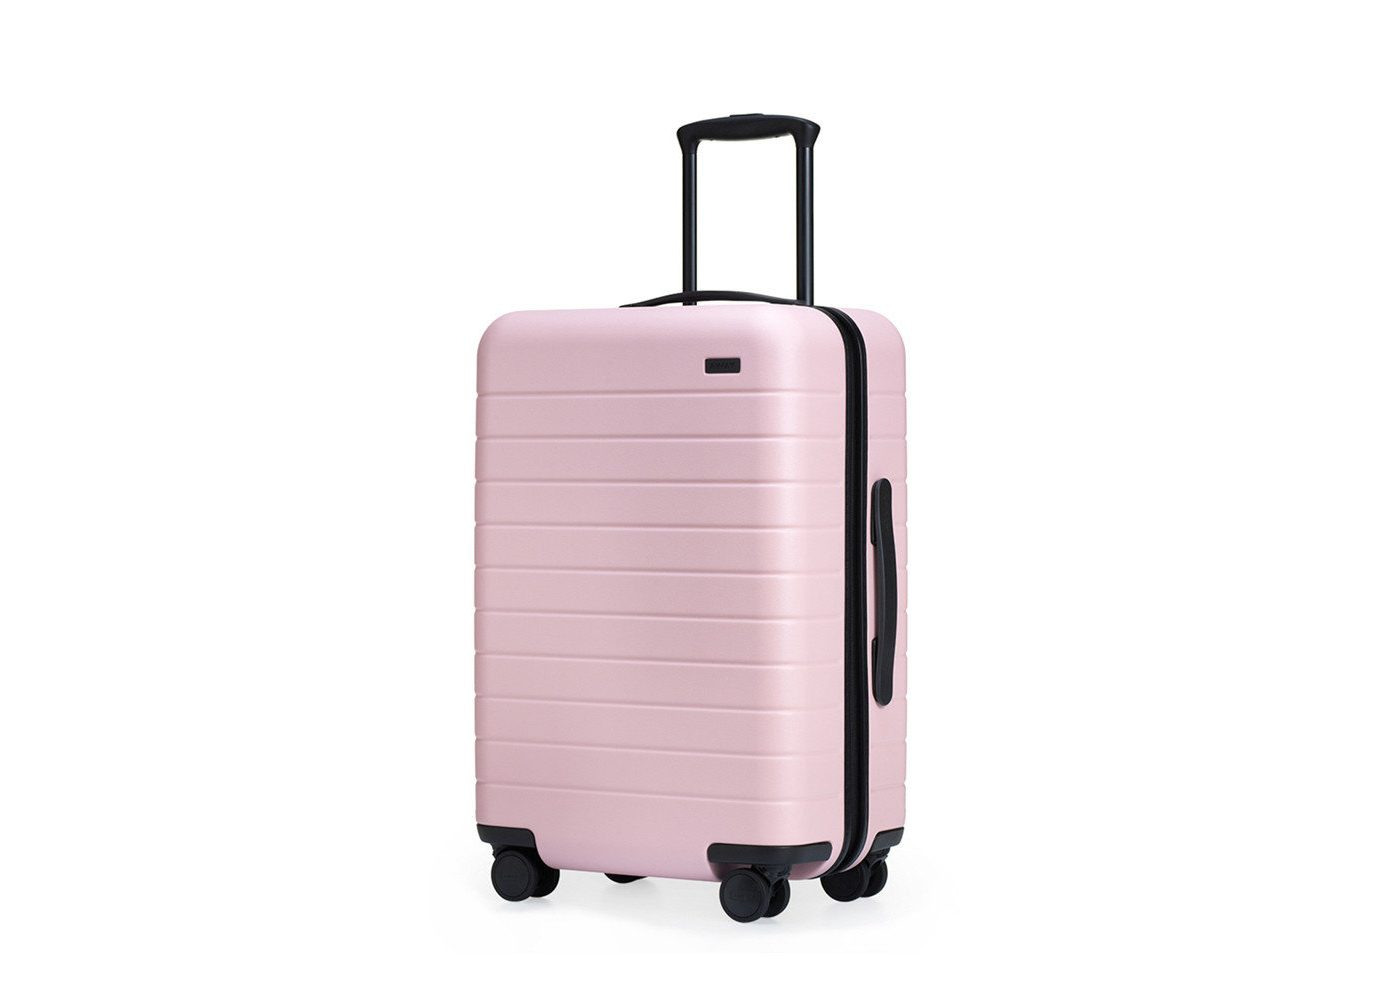 856347a9a9f Travel Shop Travel Tech Travel Tips suitcase luggage product case product  design hand luggage luggage &